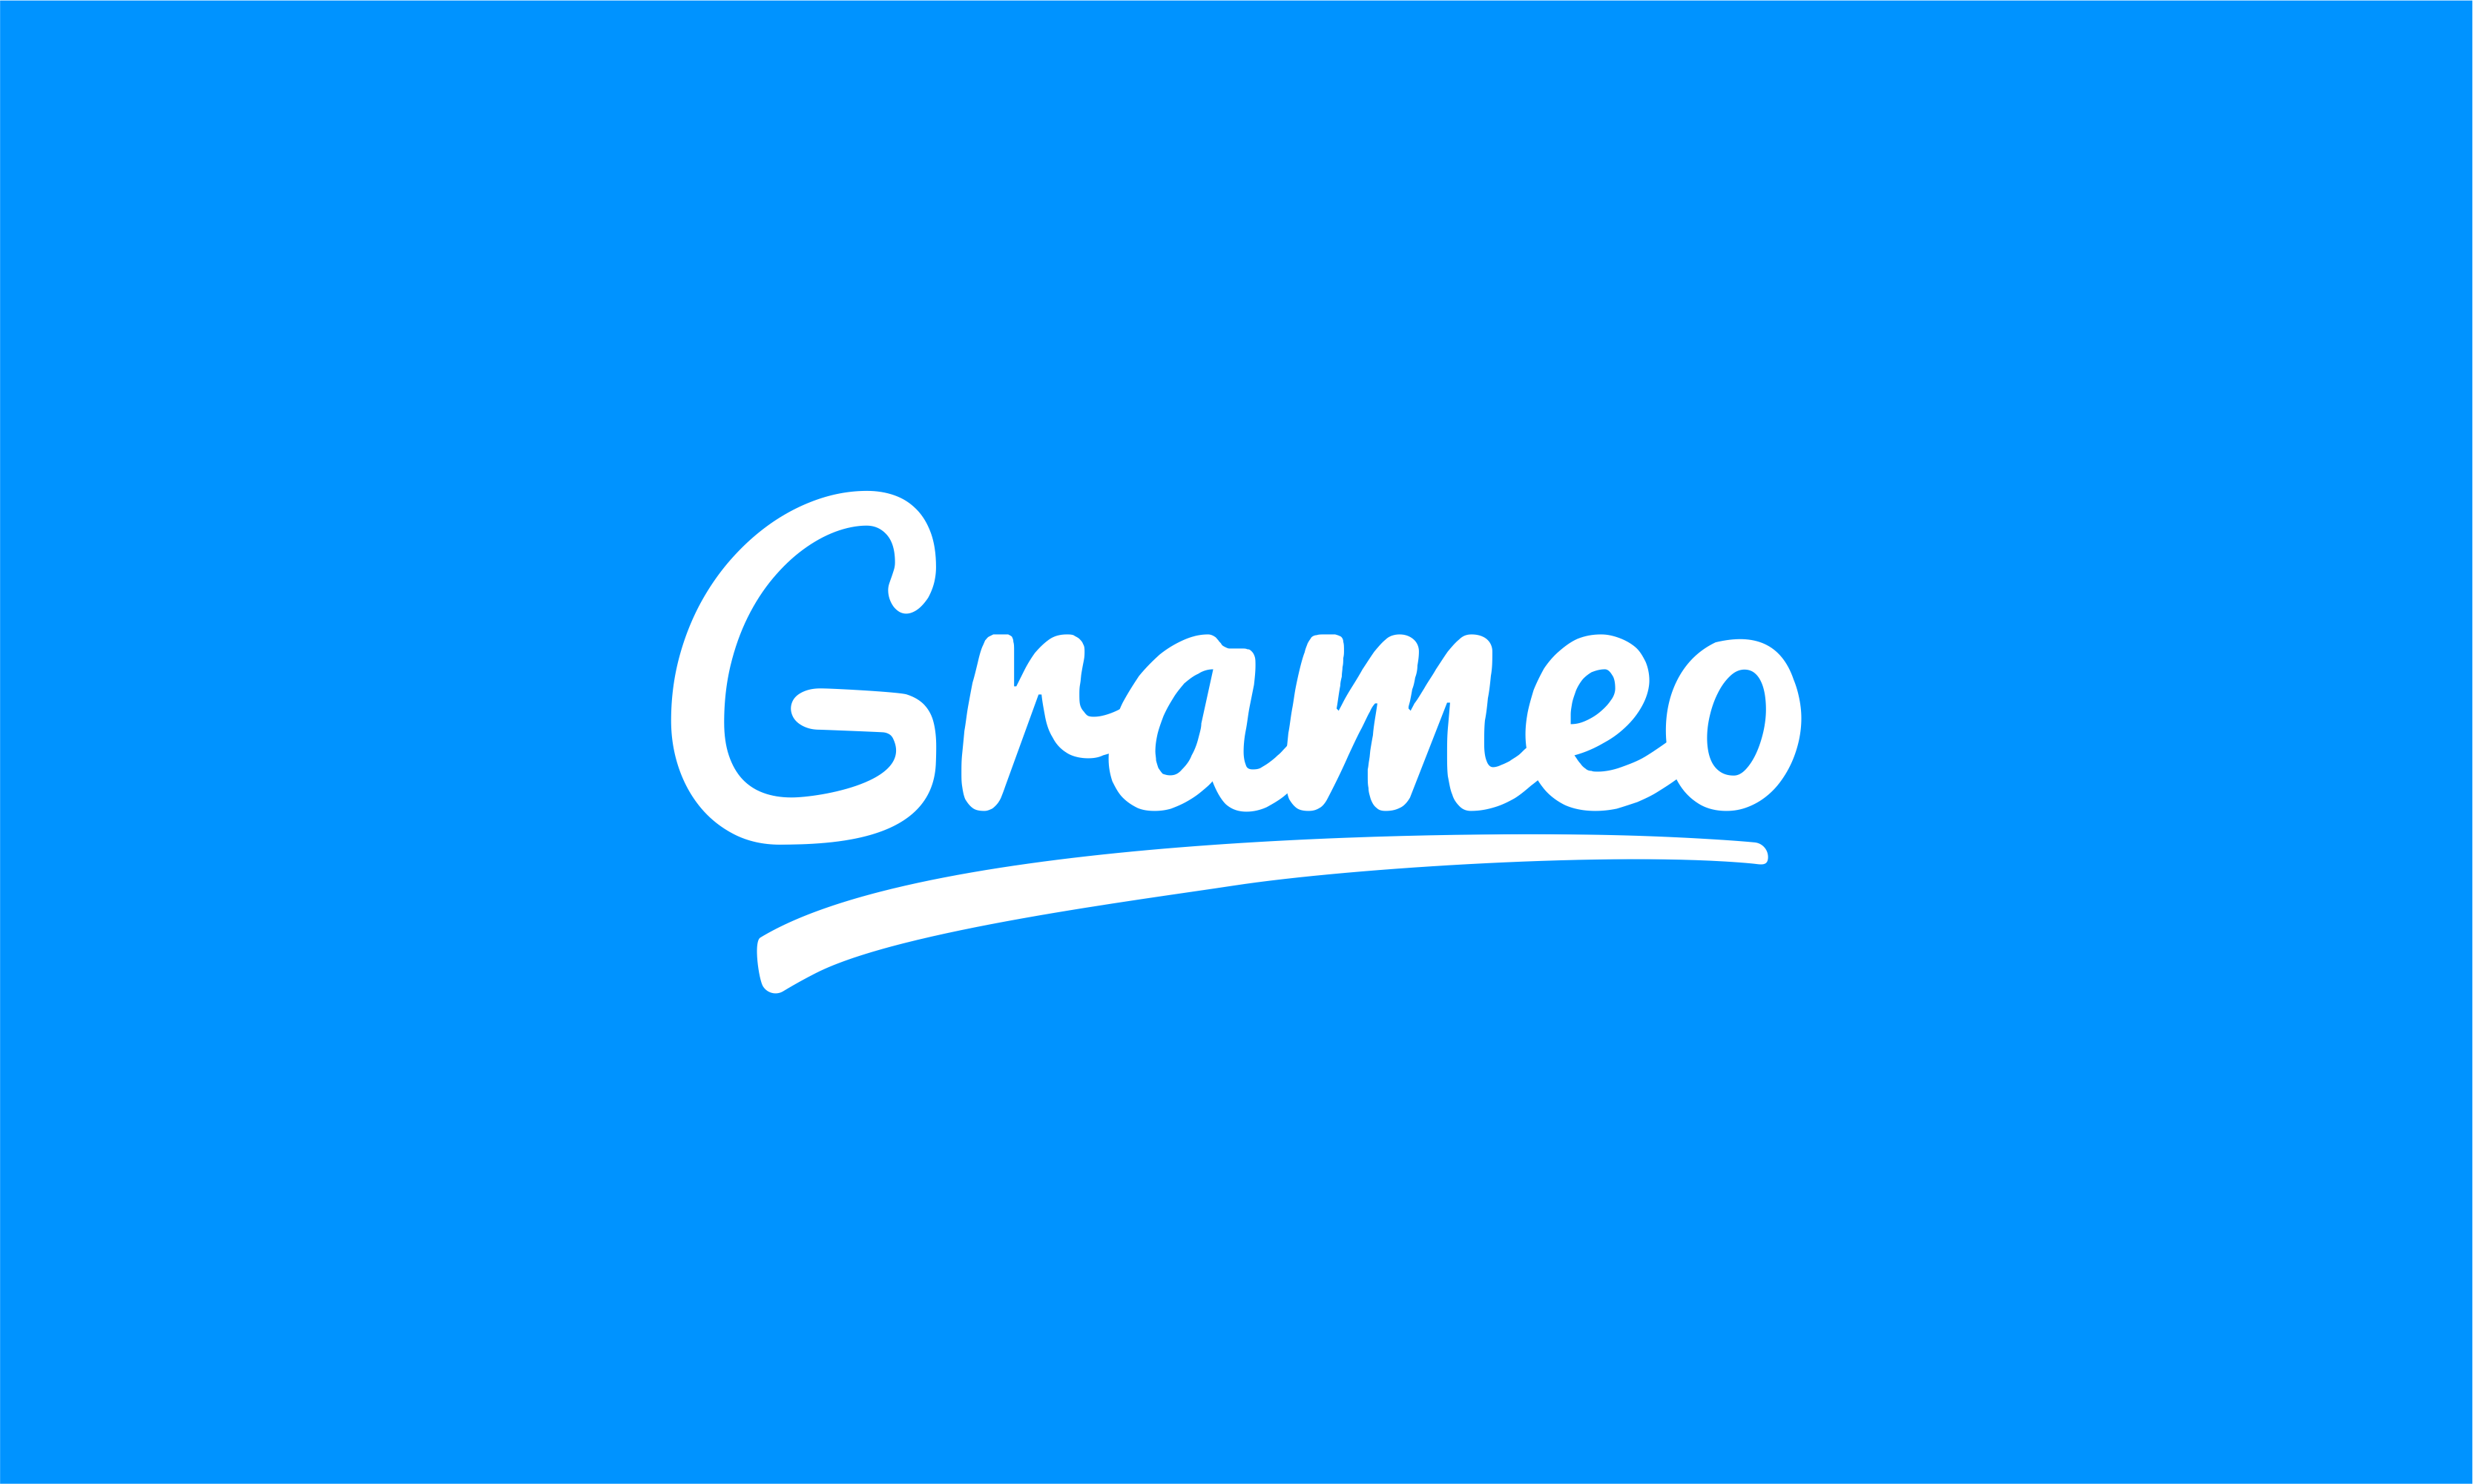 Grameo - Media business name for sale